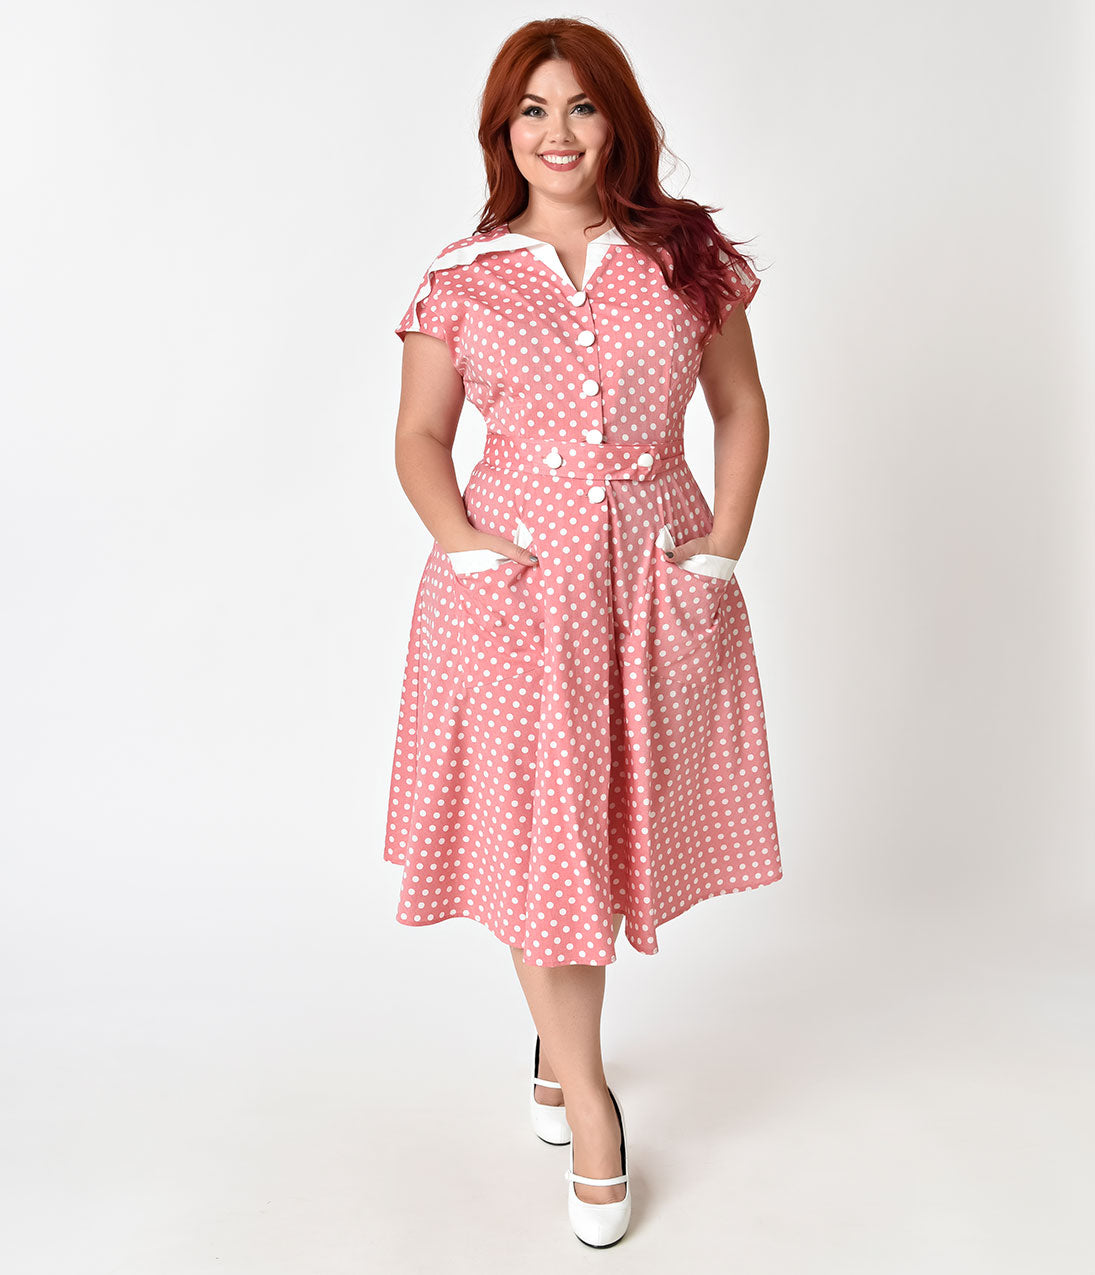 Vintage Polka Dot Dresses – 50s Spotty and Ditsy Prints Unique Vintage Plus Size 1950S Light Red  Ivory Dotted Cap Sleeve Hedda Swing Dress $71.00 AT vintagedancer.com